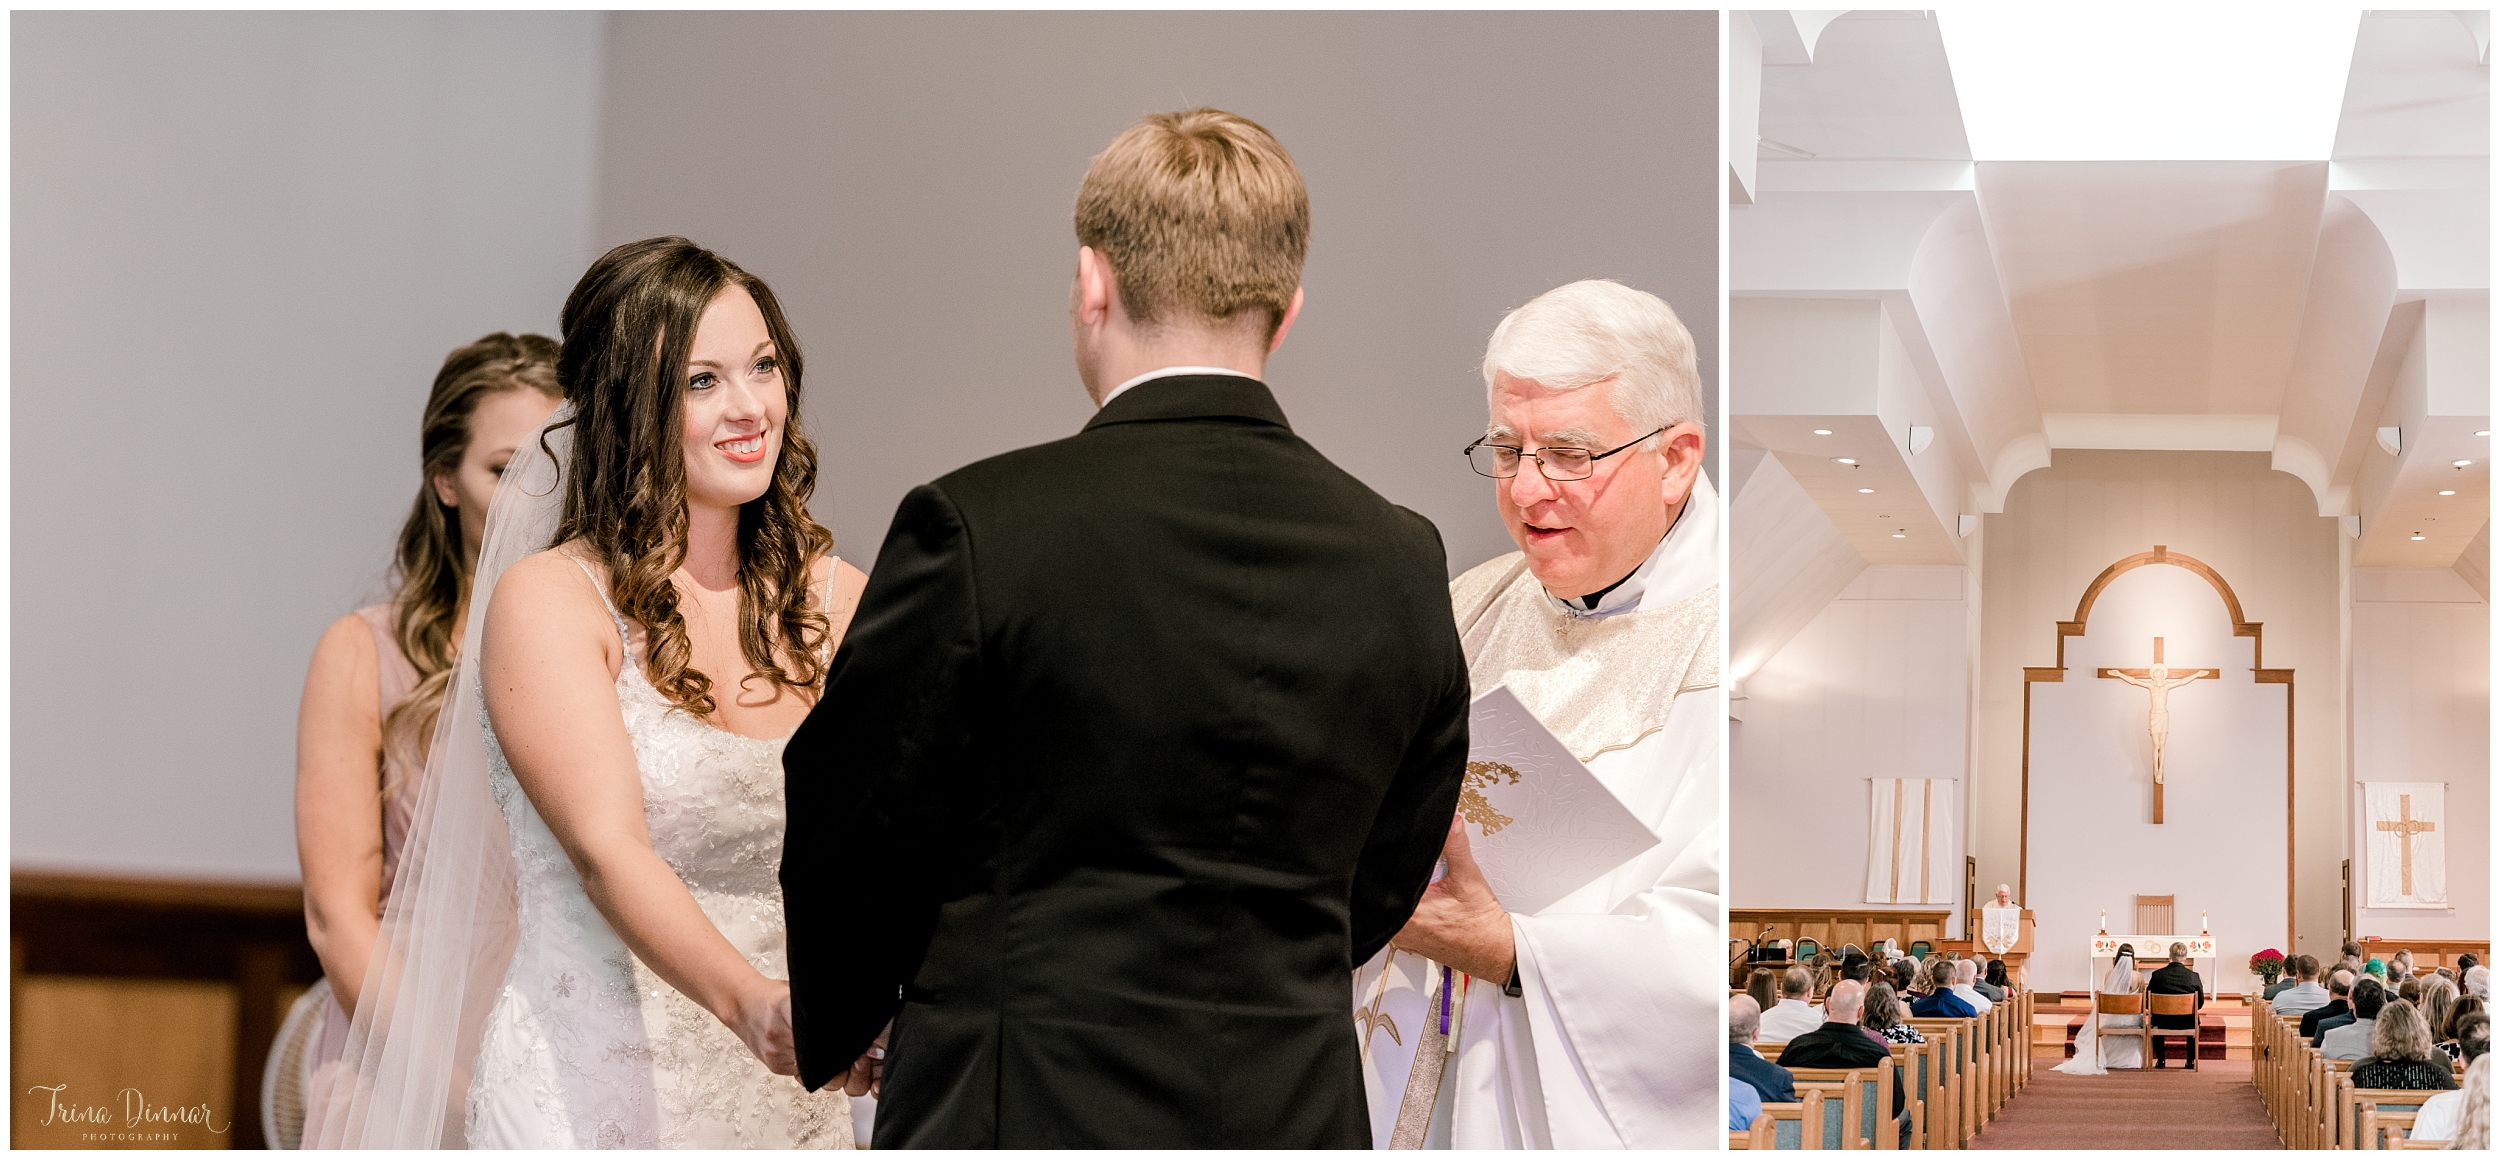 St. Maximilian Kolbe Parish wedding ceremony